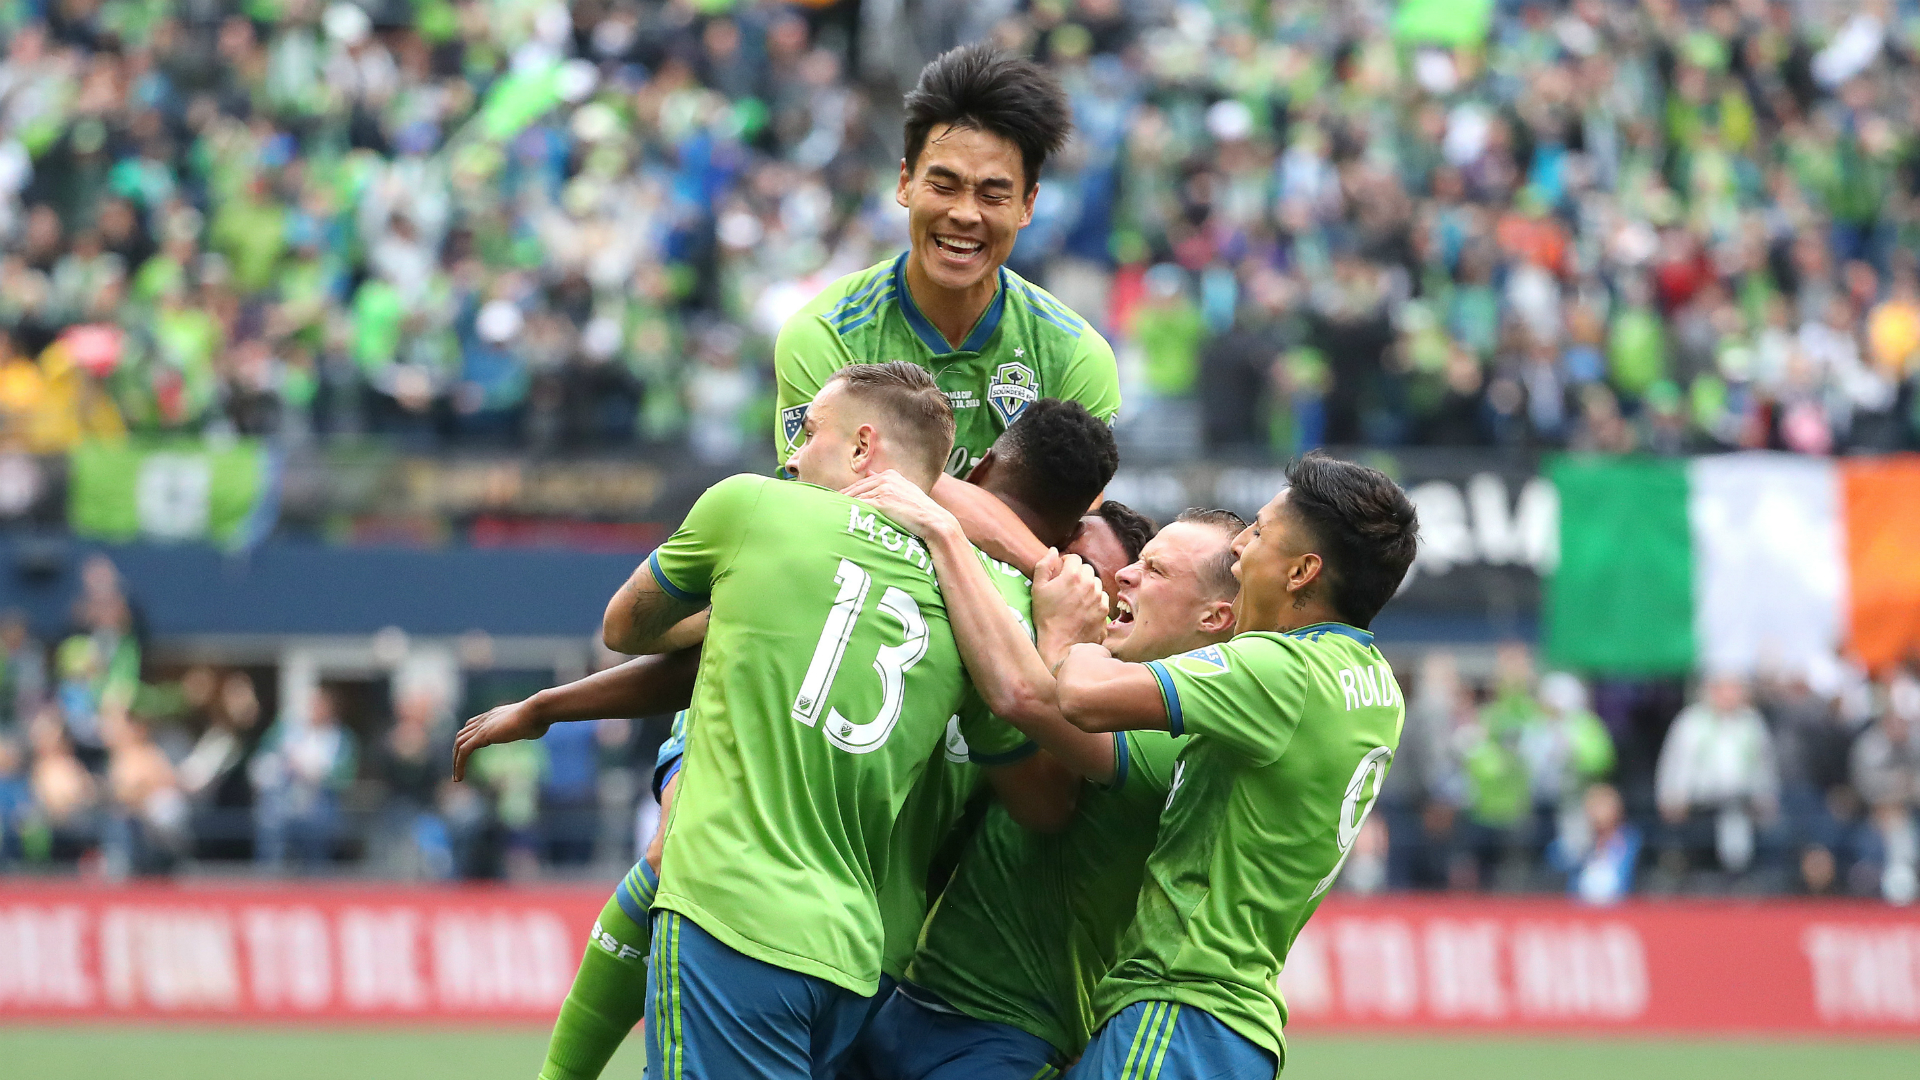 Seattle Sounders 3-1 Toronto: Rodriguez scores stunner in MLS Cup triumph